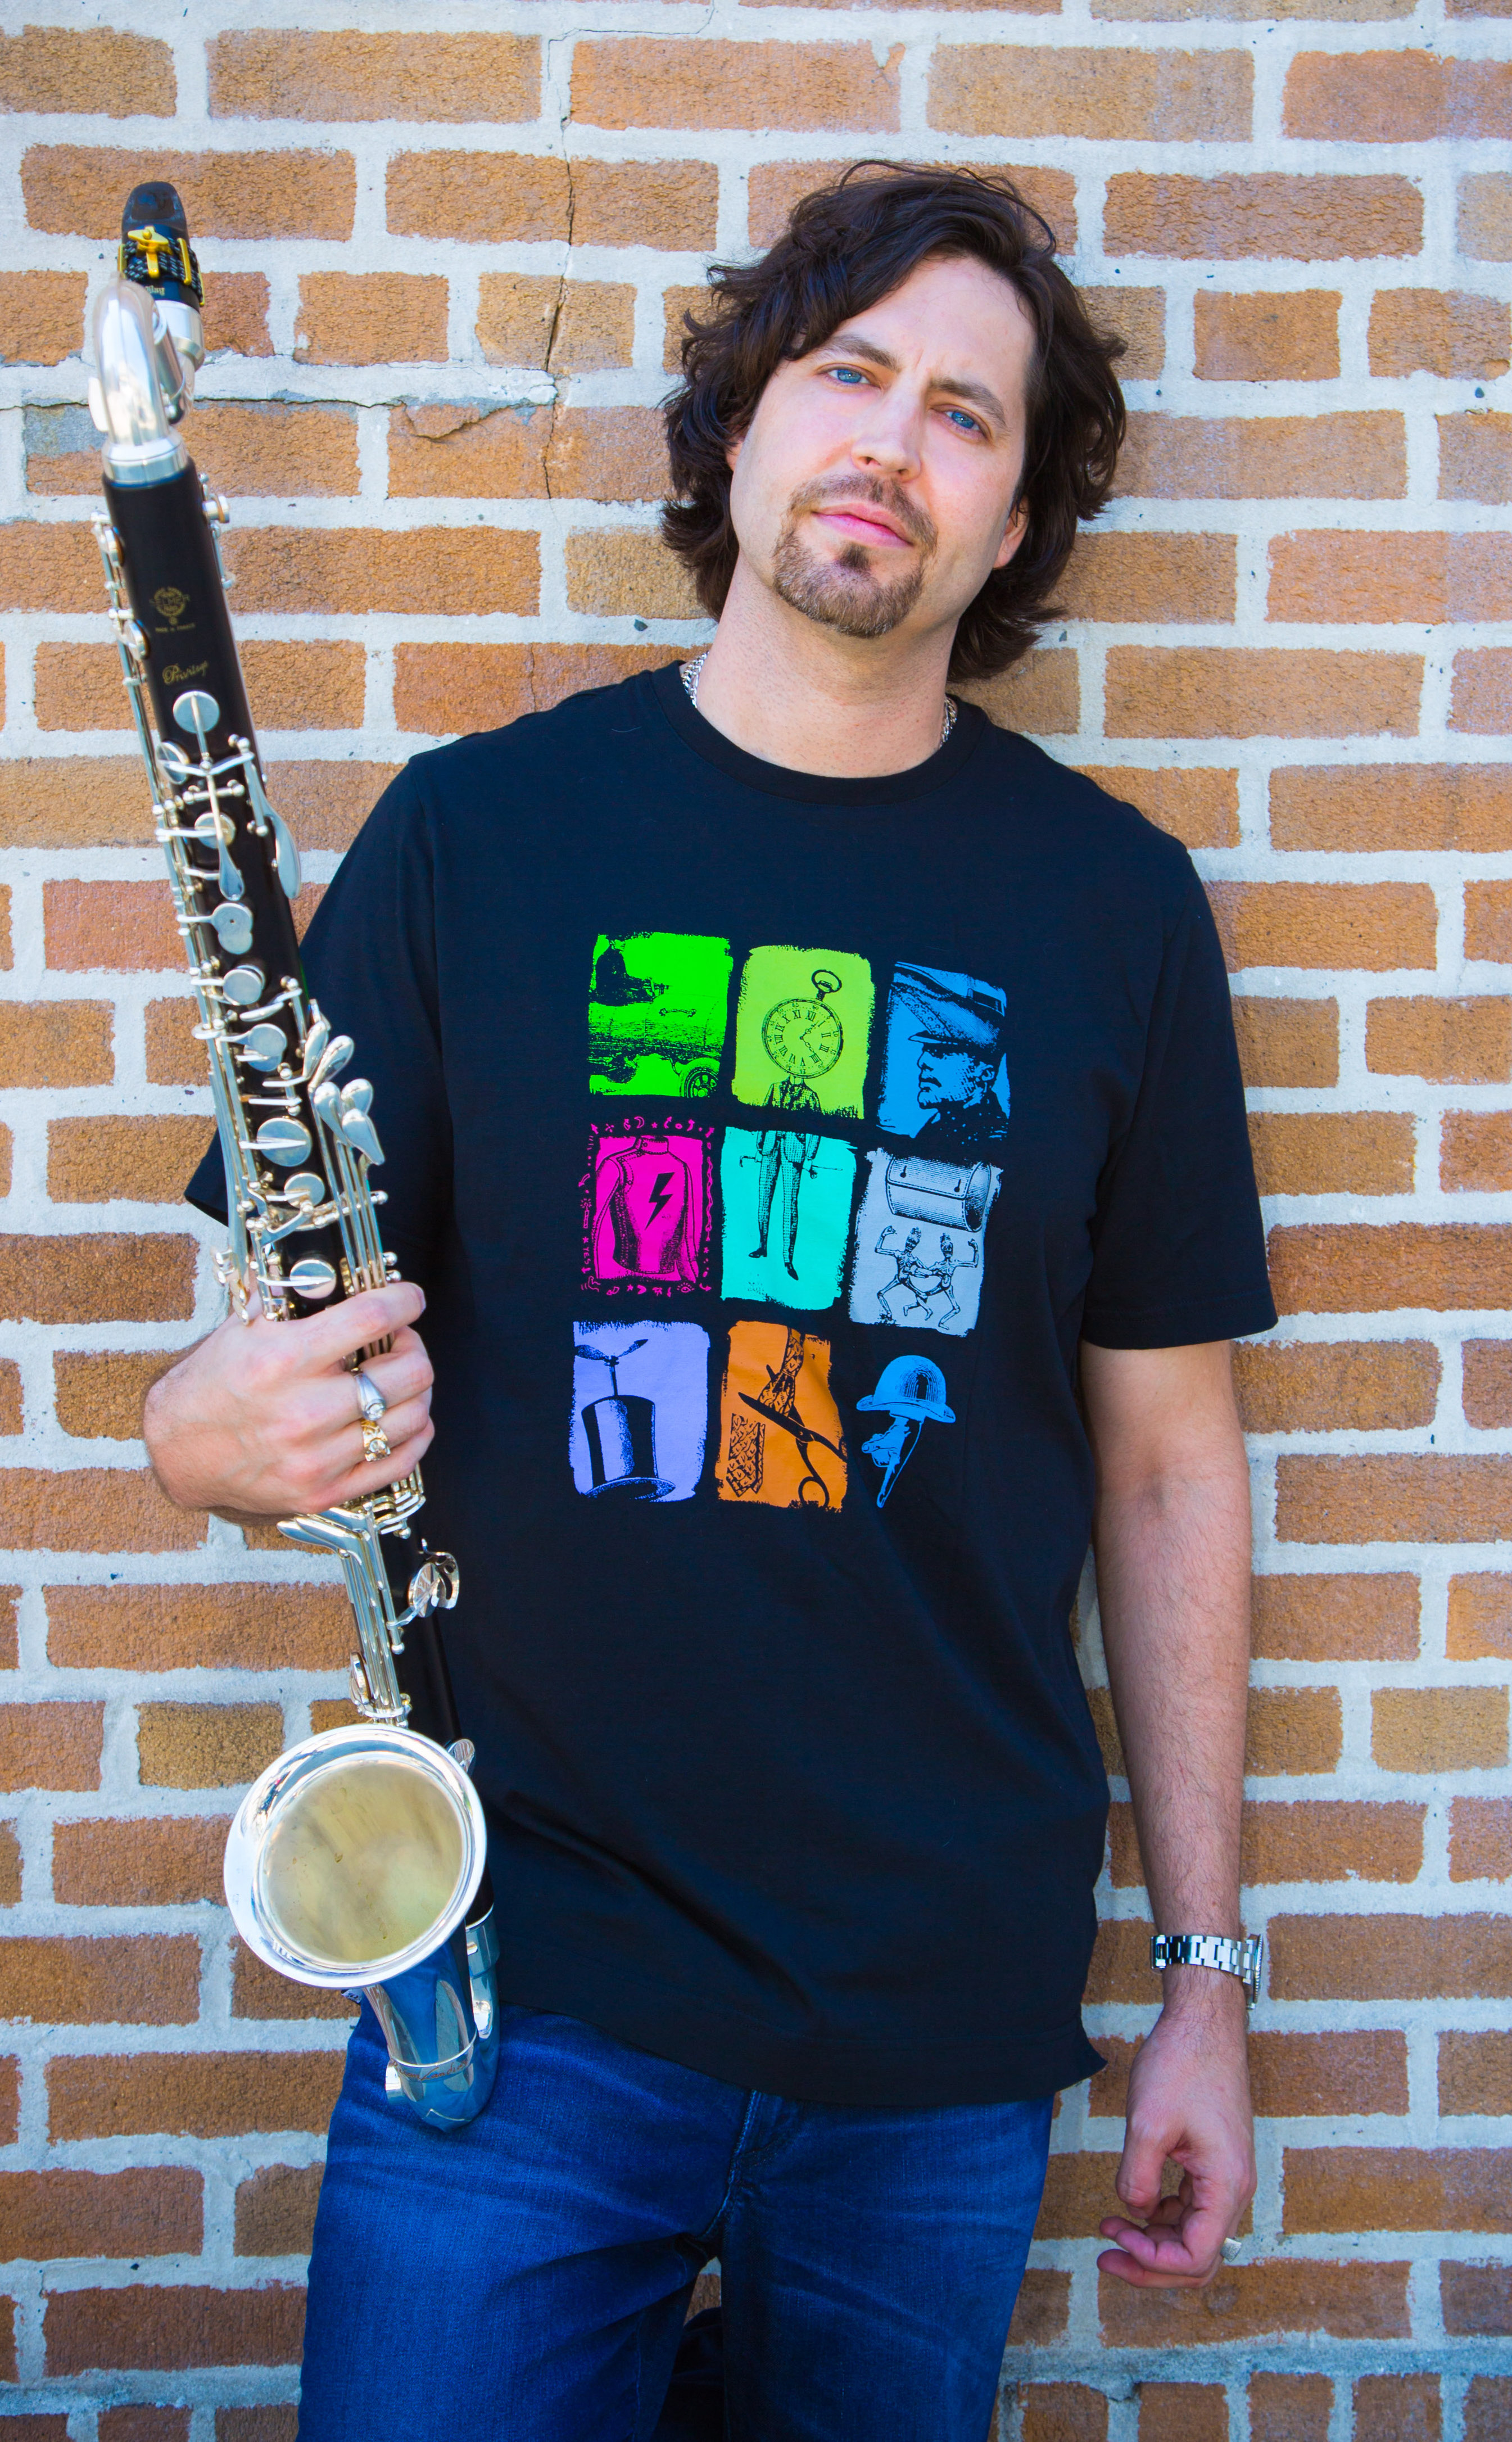 Brian Landrus with Bass Clarinet